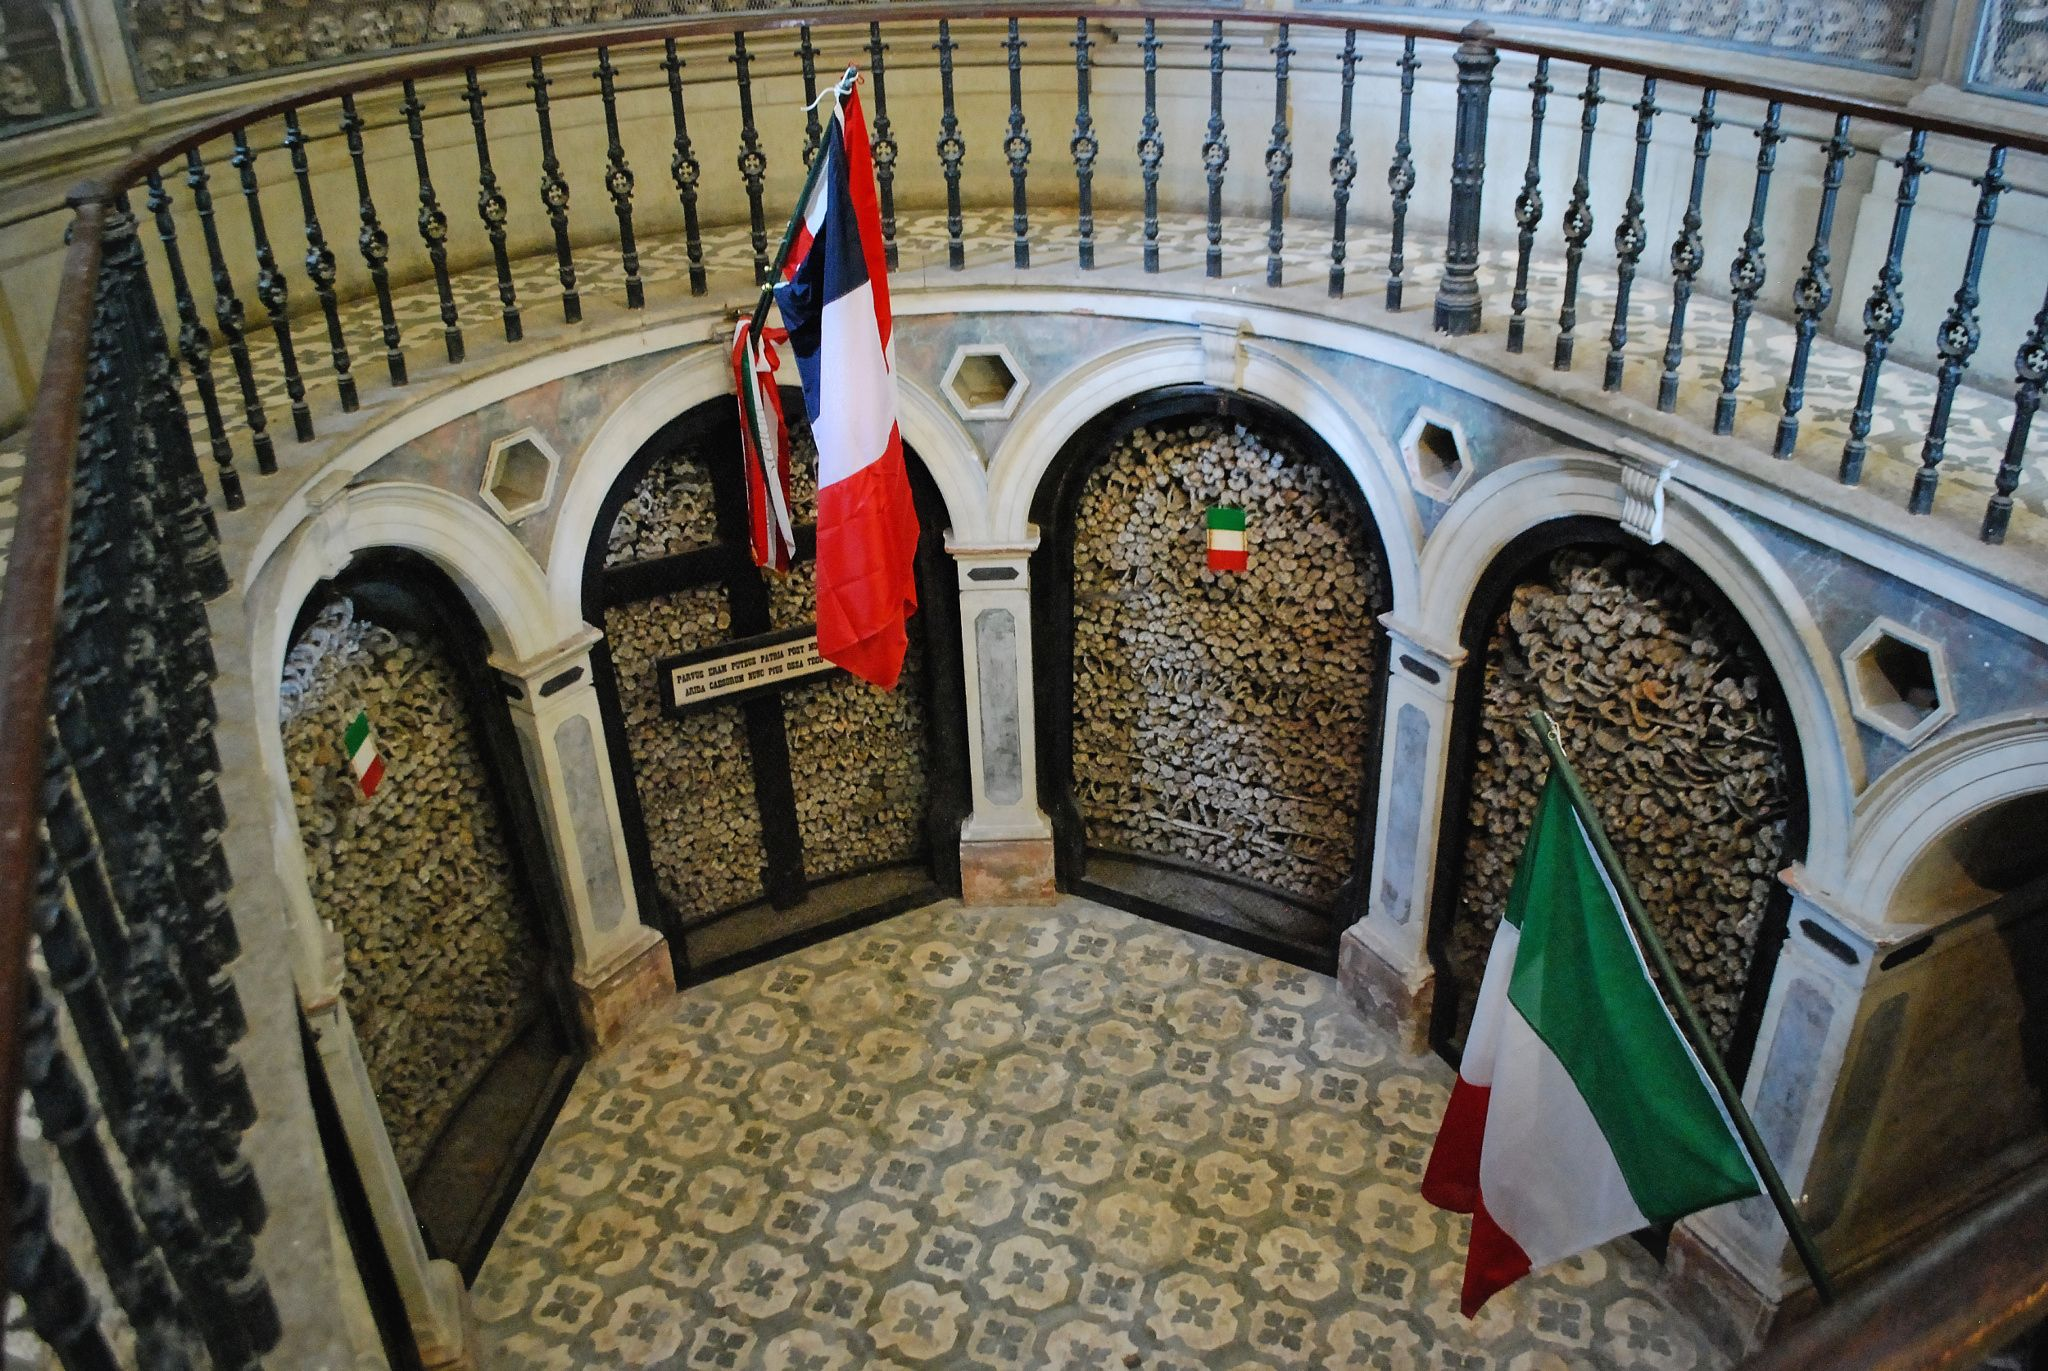 Bones and Flags - Chapel-Ossuary in Solferino, Mantova, Italy. It contains the remain of thousands of victims of the battle fought on 24 June 1869 between French and Sardinian Army against Austrian Army.